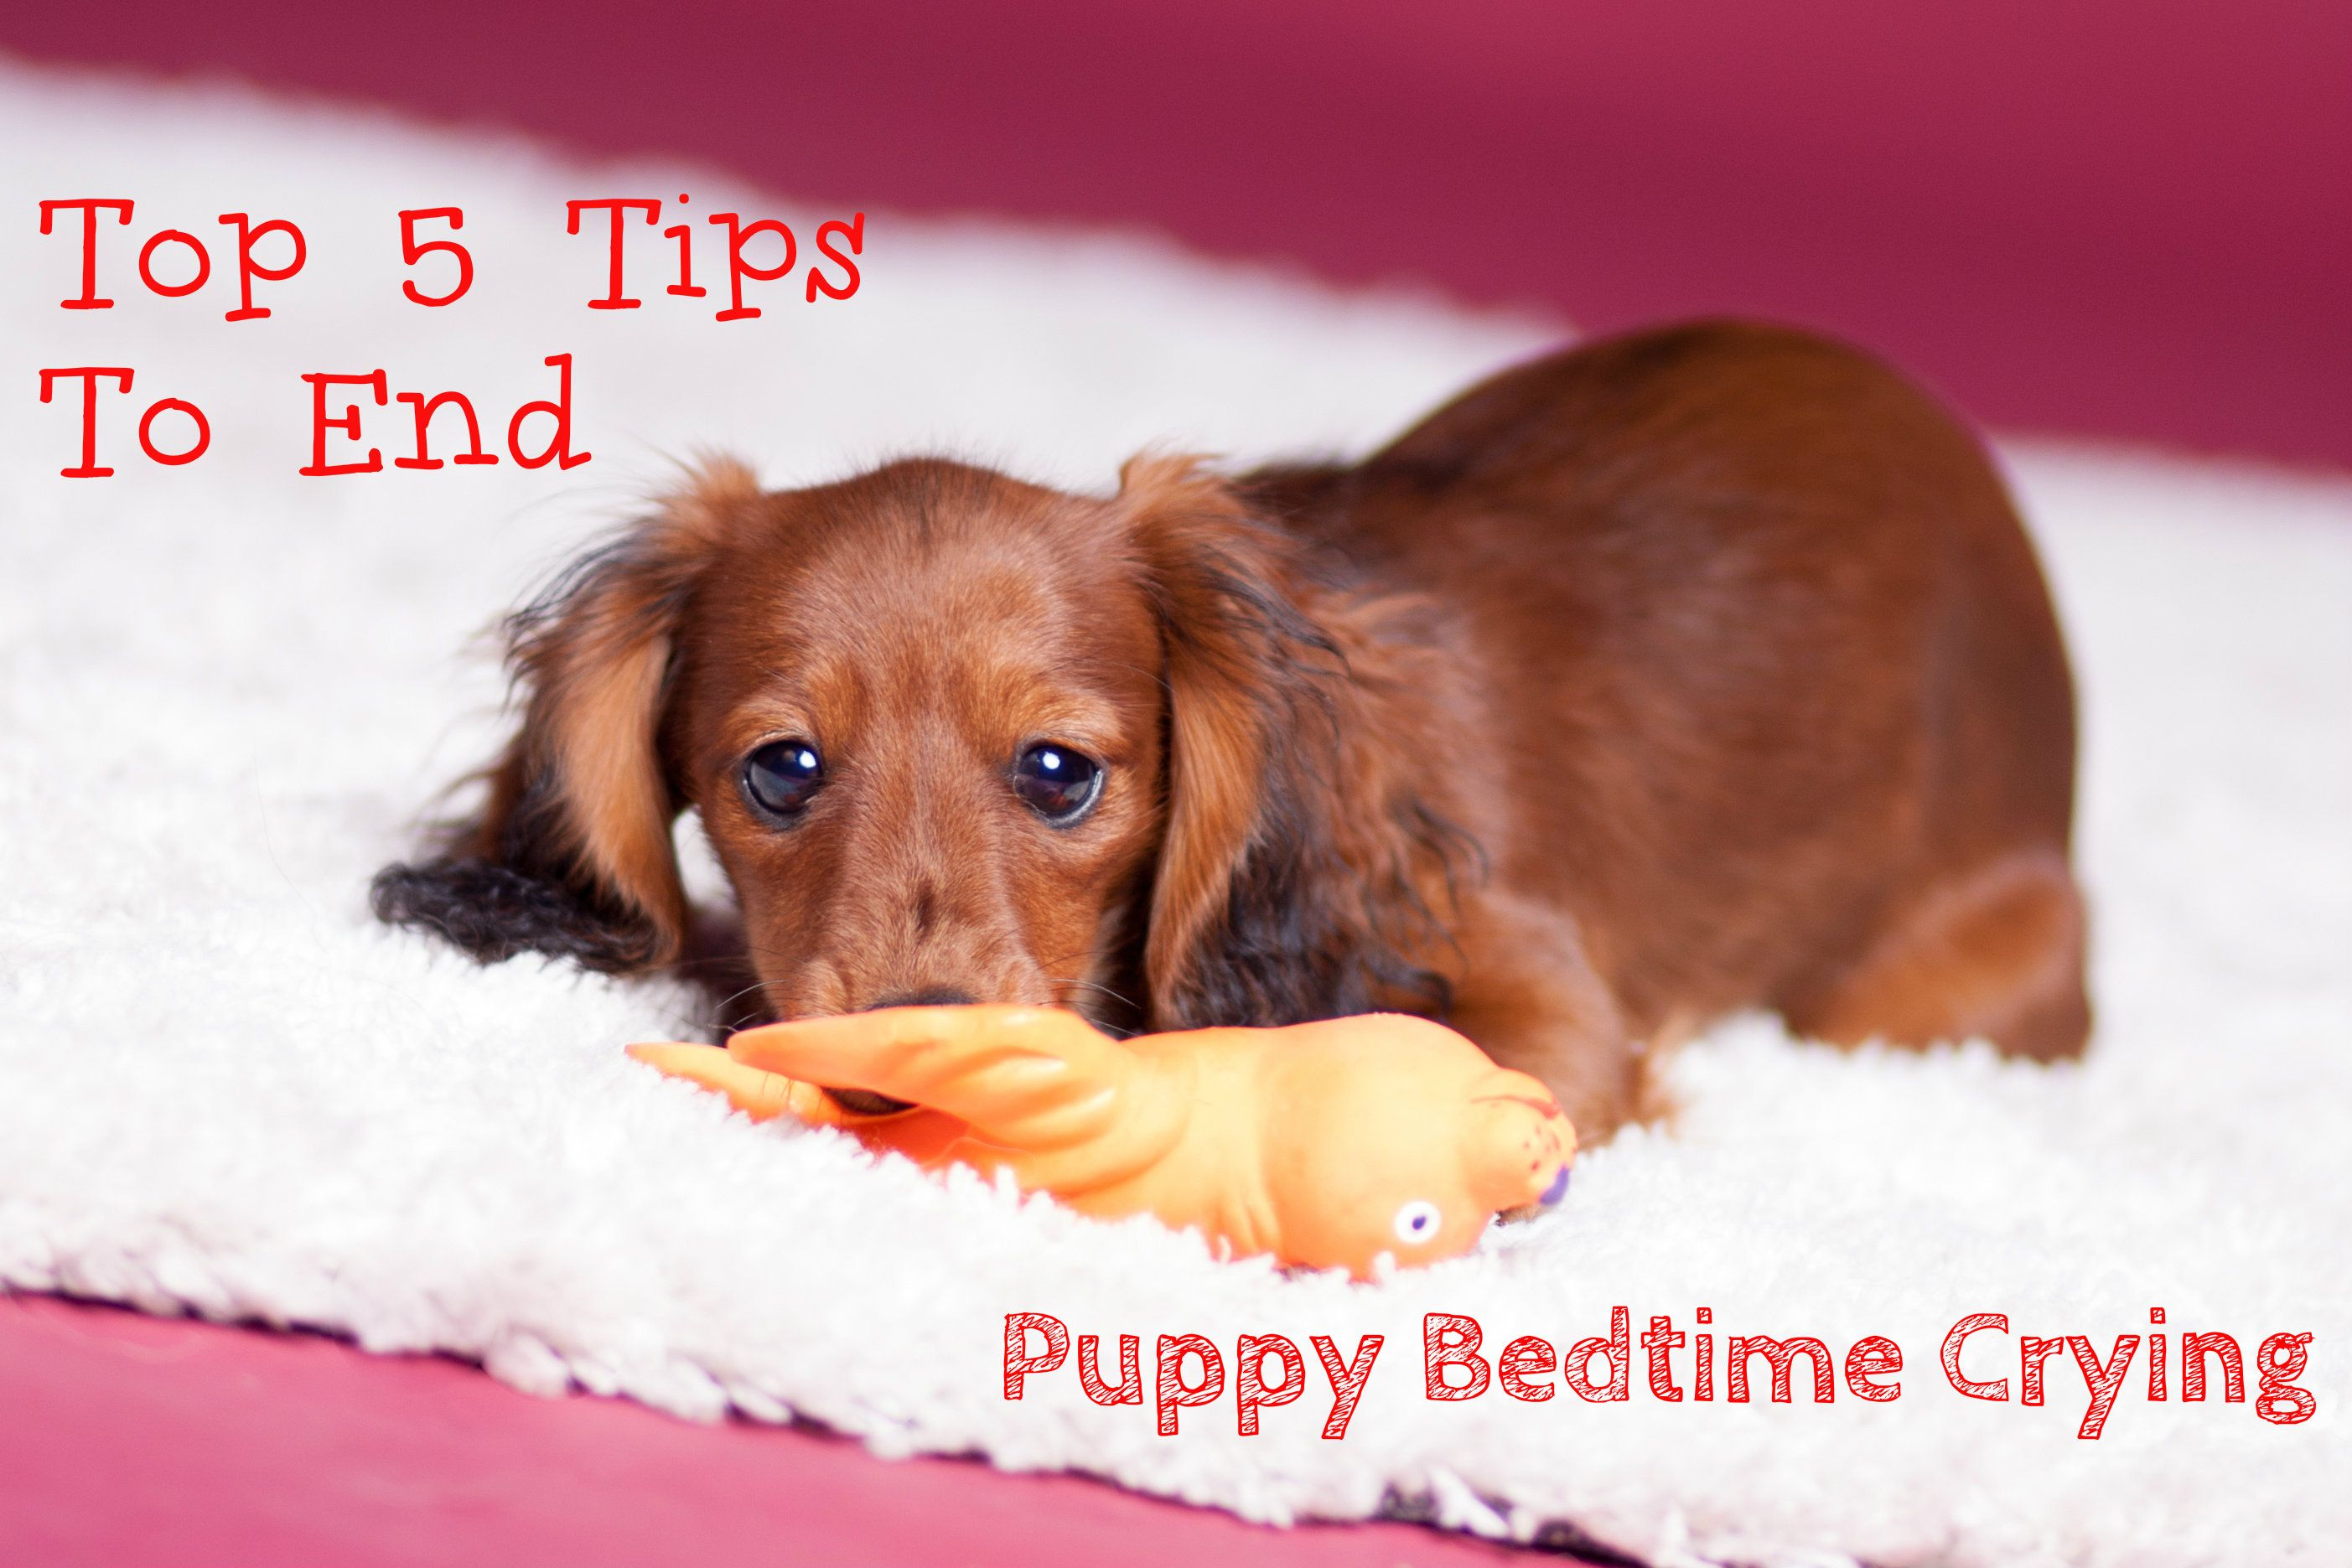 Moving house is a stressful experience, especially the first time! Here are our top 5 tips to help you stop your new puppy crying at bedtime.